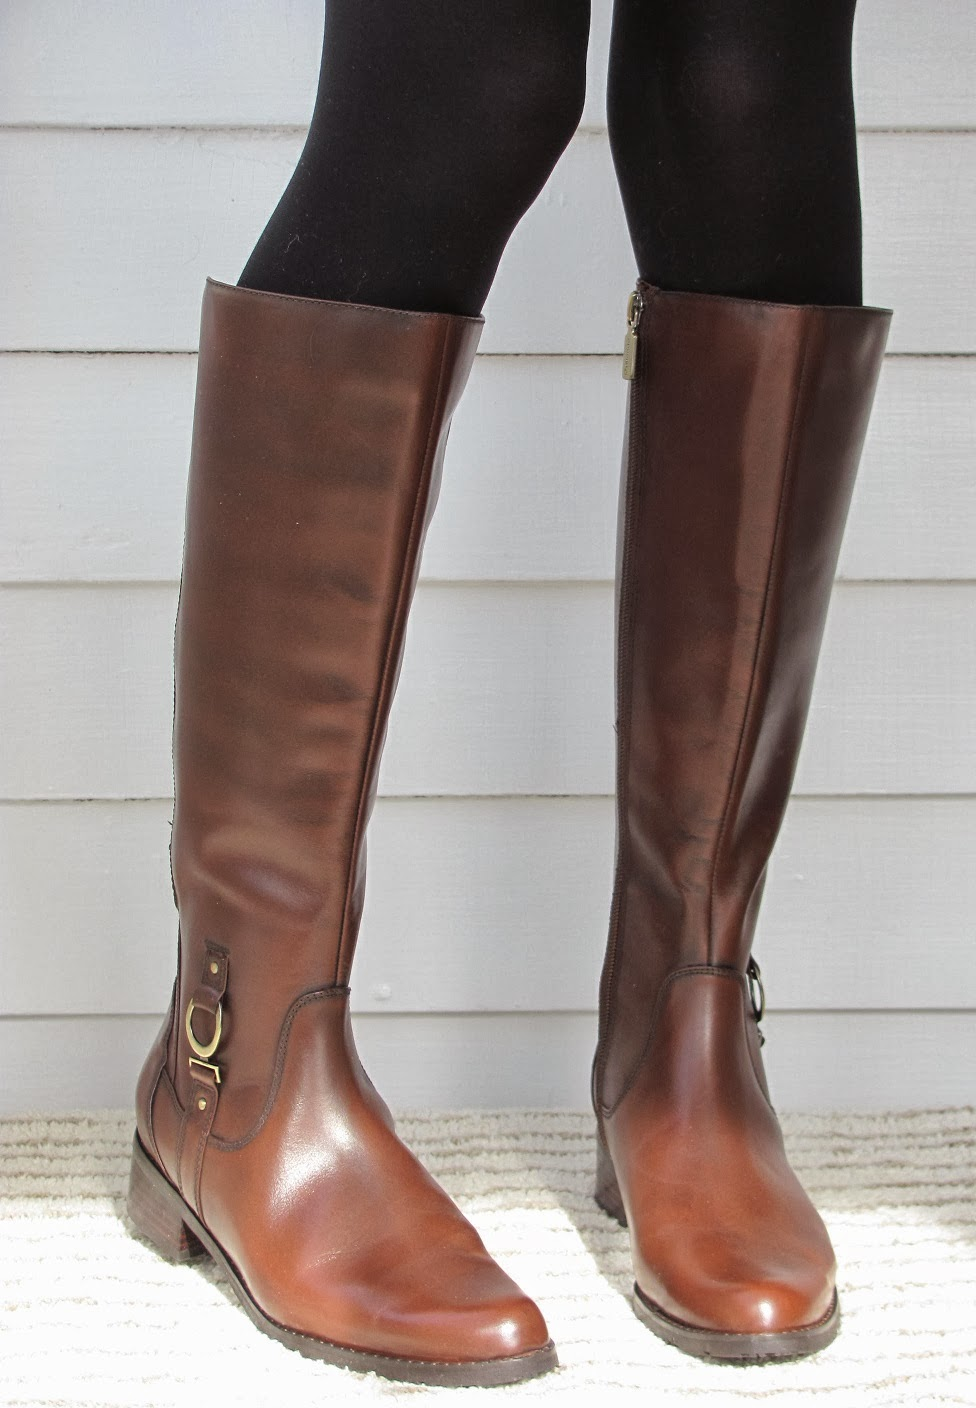 Howdy Slim! Riding Boots for Thin Calves: Blondo Vallera